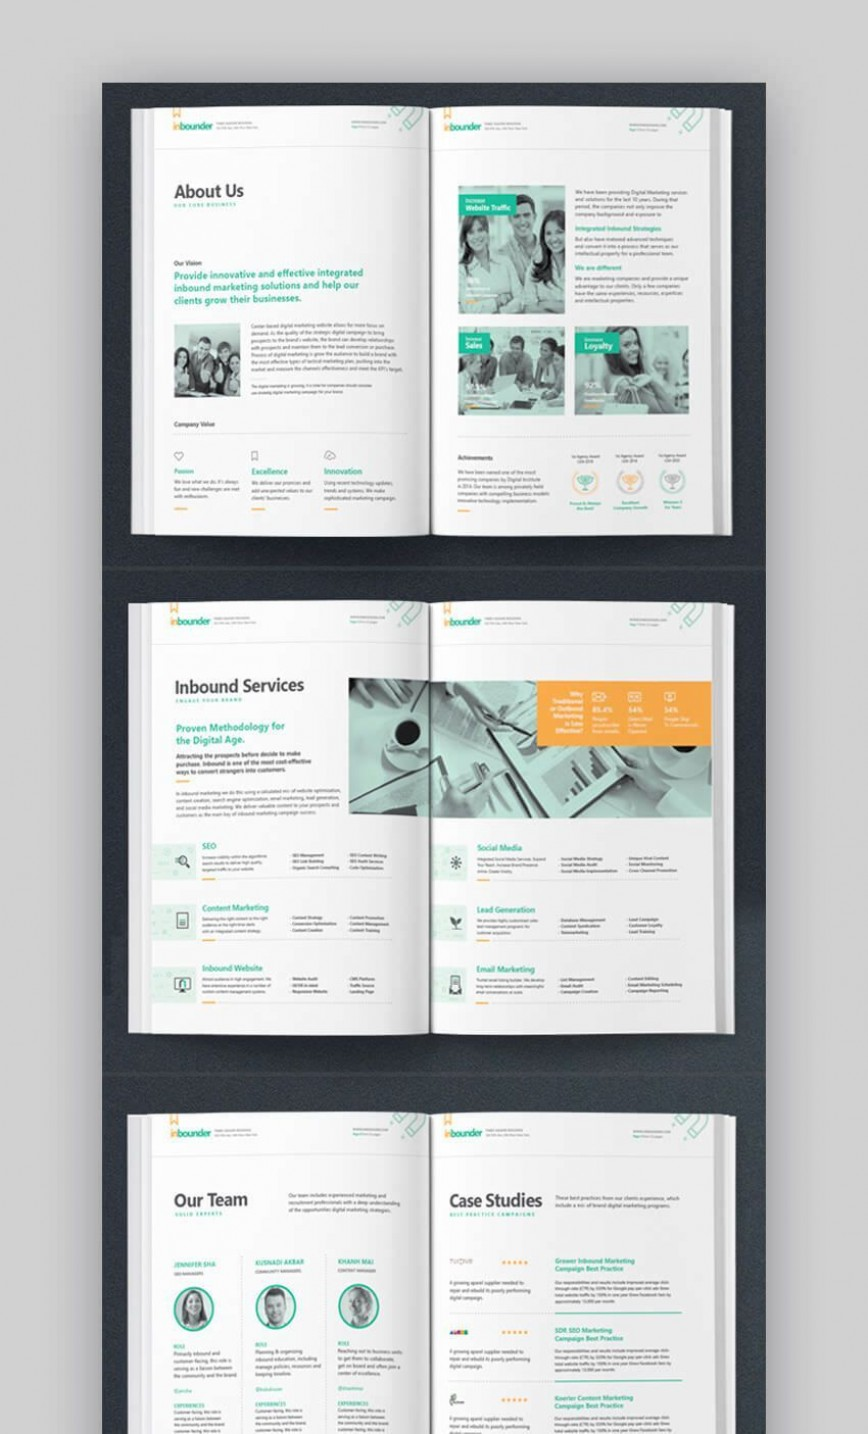 002 Outstanding Social Media Proposal Template 2019 High Resolution 868